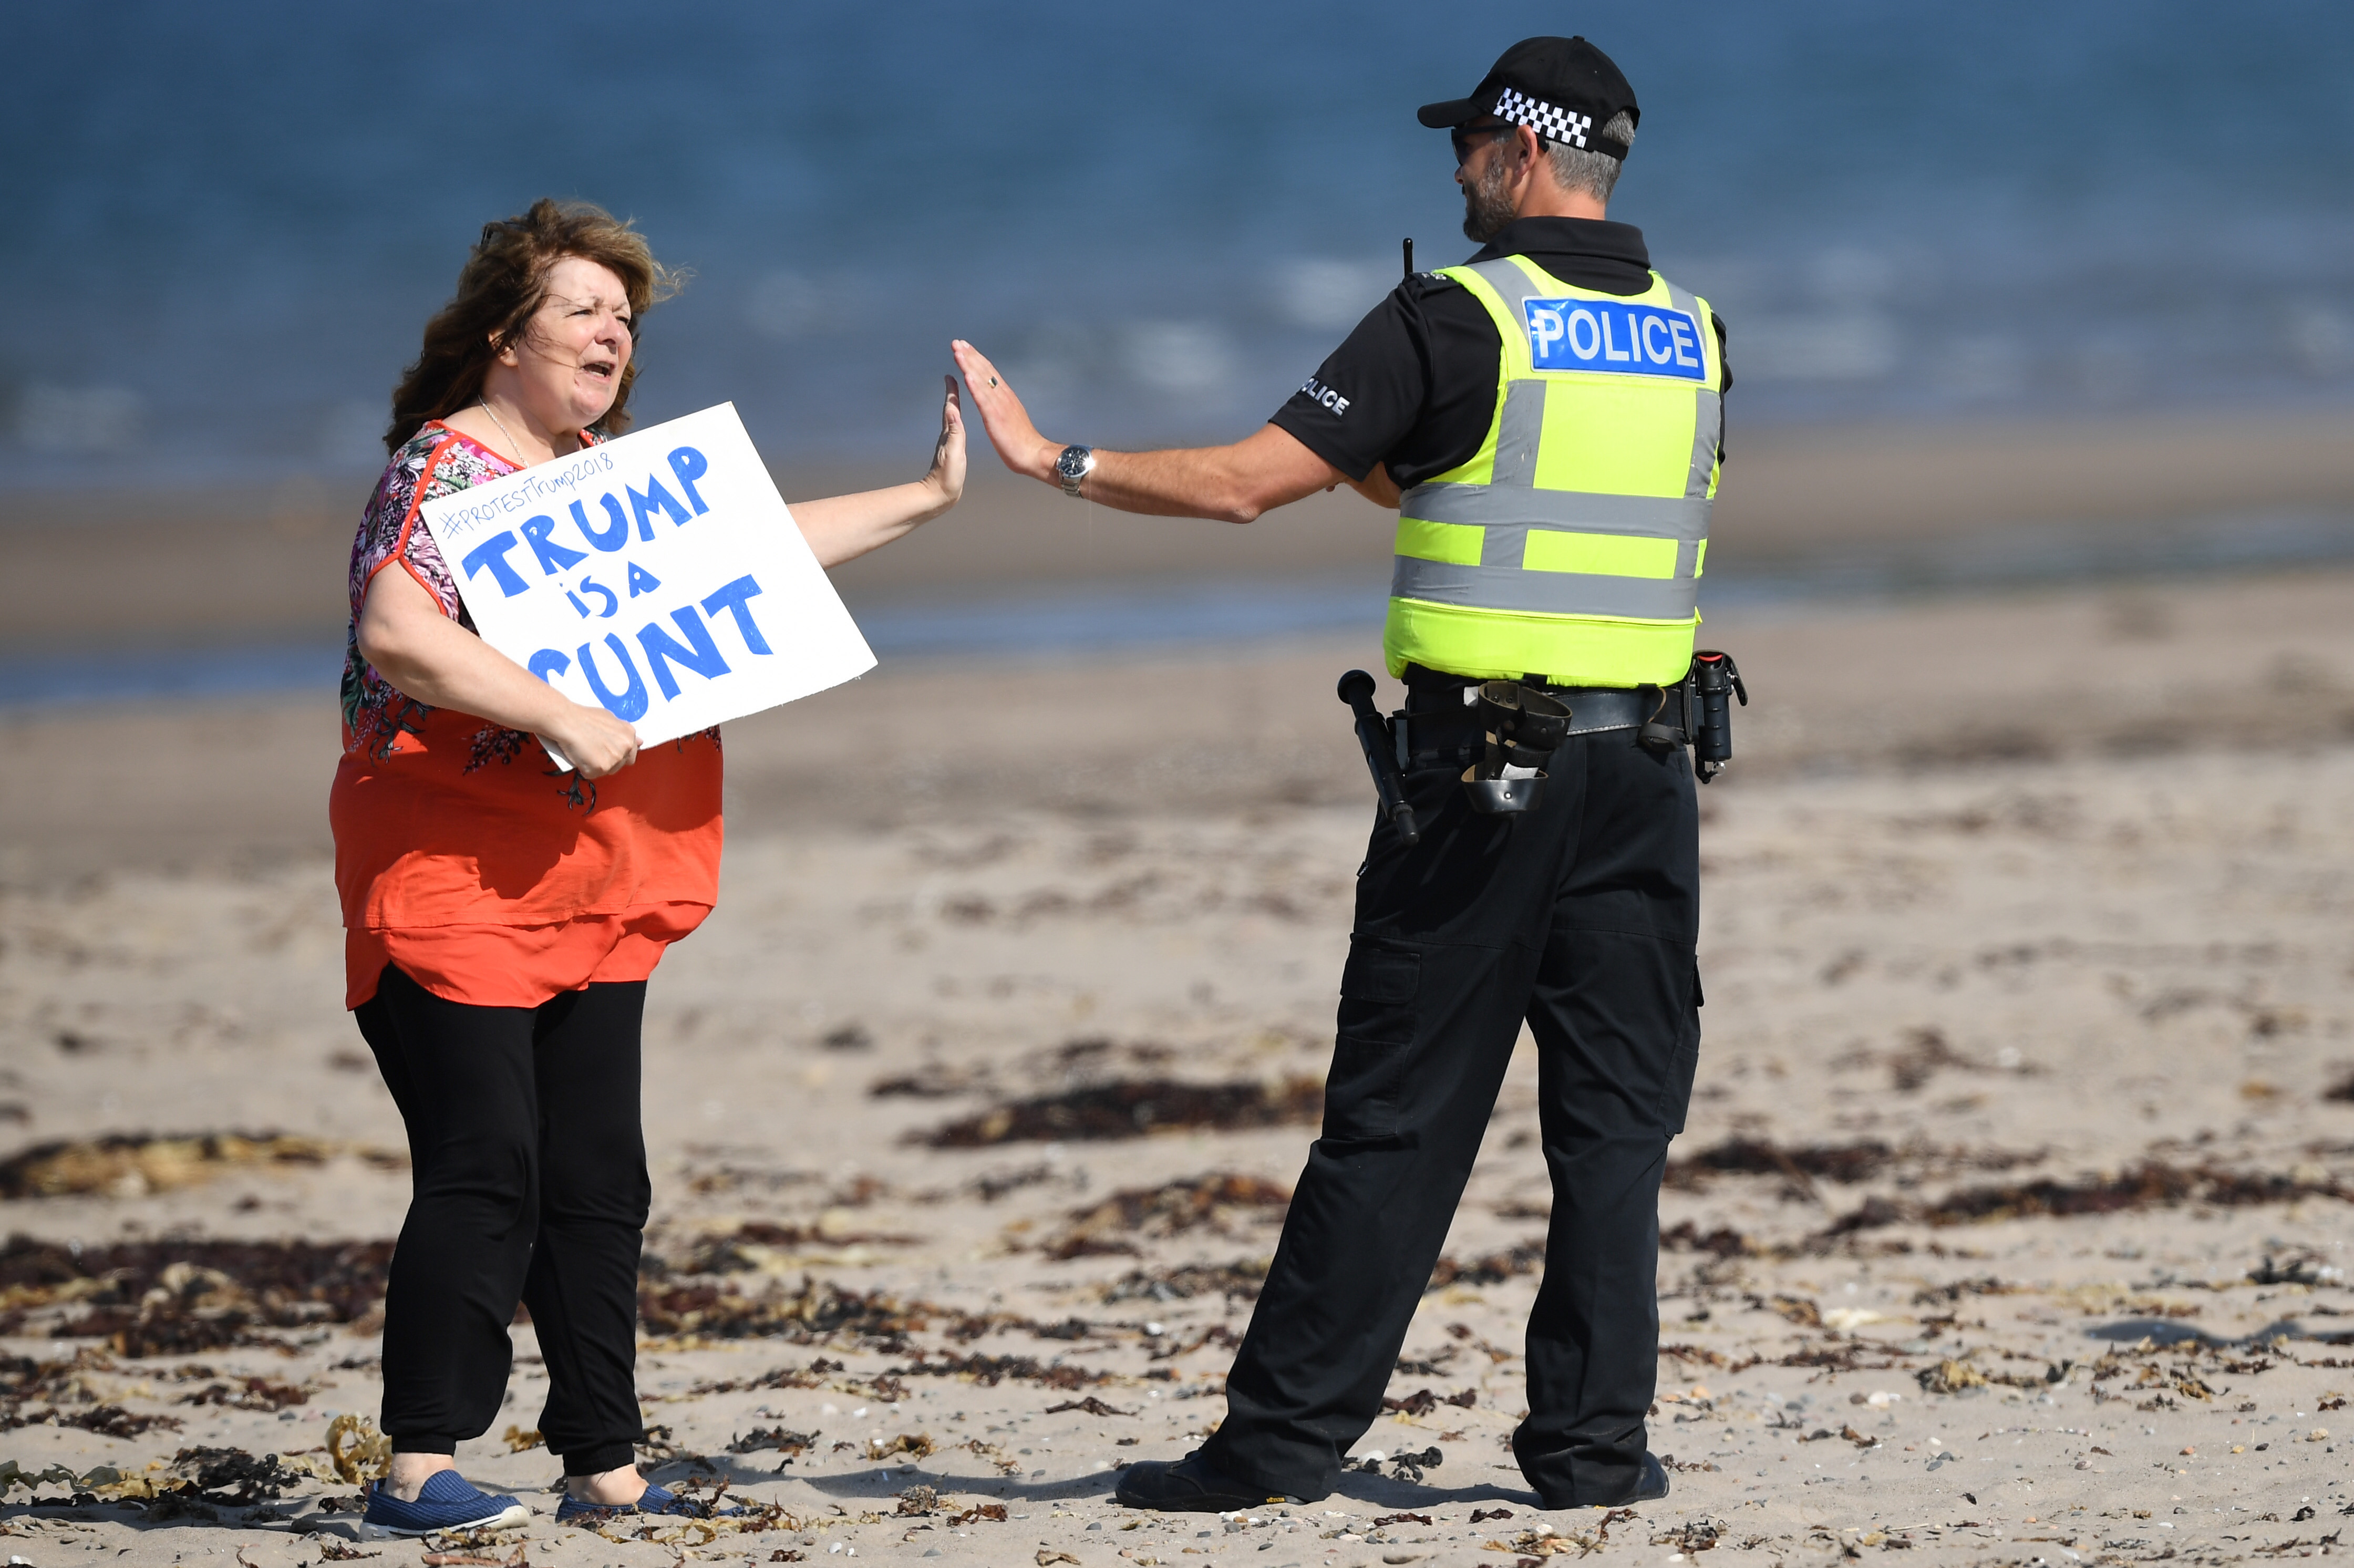 """TURNBERRY, SCOTLAND - JULY 14:  Scottish stand-up comedian Janey Godley gives a high-five to a police officer as she holds a sign in protest stating """"Trump is a runt"""" on the beach outside near Trump Turnberry Luxury Collection Resort during the U.S. President's visit to the United Kingdom on July 14, 2018 in Turnberry, Scotland. The President of the United States and First Lady, Melania Trump on their first official visit to the UK after yesterday's meetings with the Prime Minister and the Queen is in Scotland for private weekend stay at his Turnberry."""